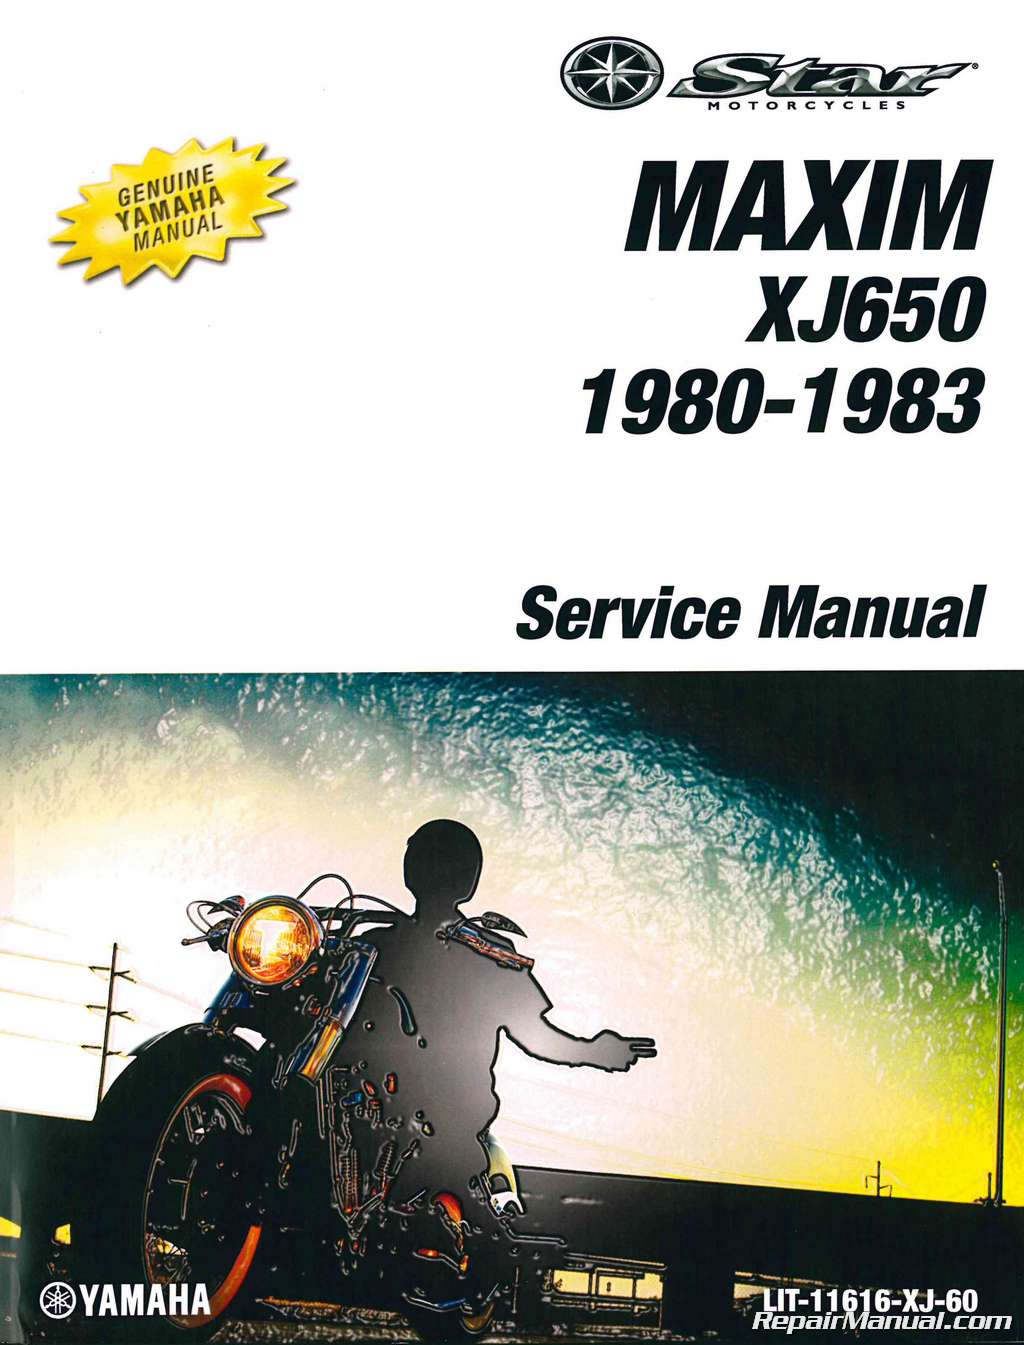 1980 1983 yamaha xj650 maxim motorcycle service manual repair 1980 1983 yamaha xj650 maxim service manual